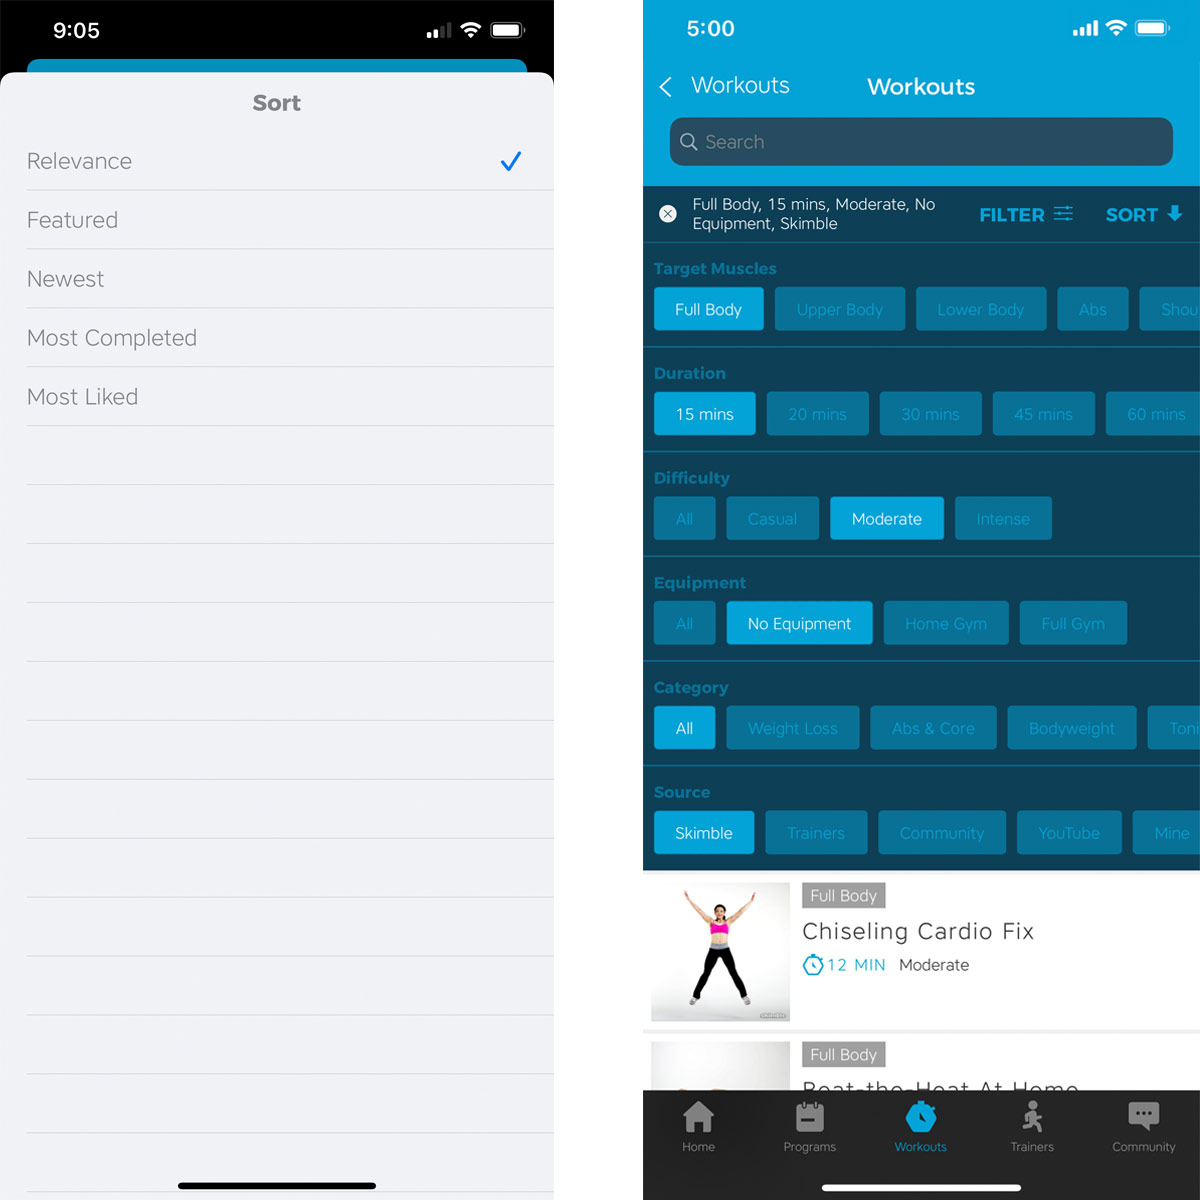 Explore Workout Trainer's Search and Discovery Features